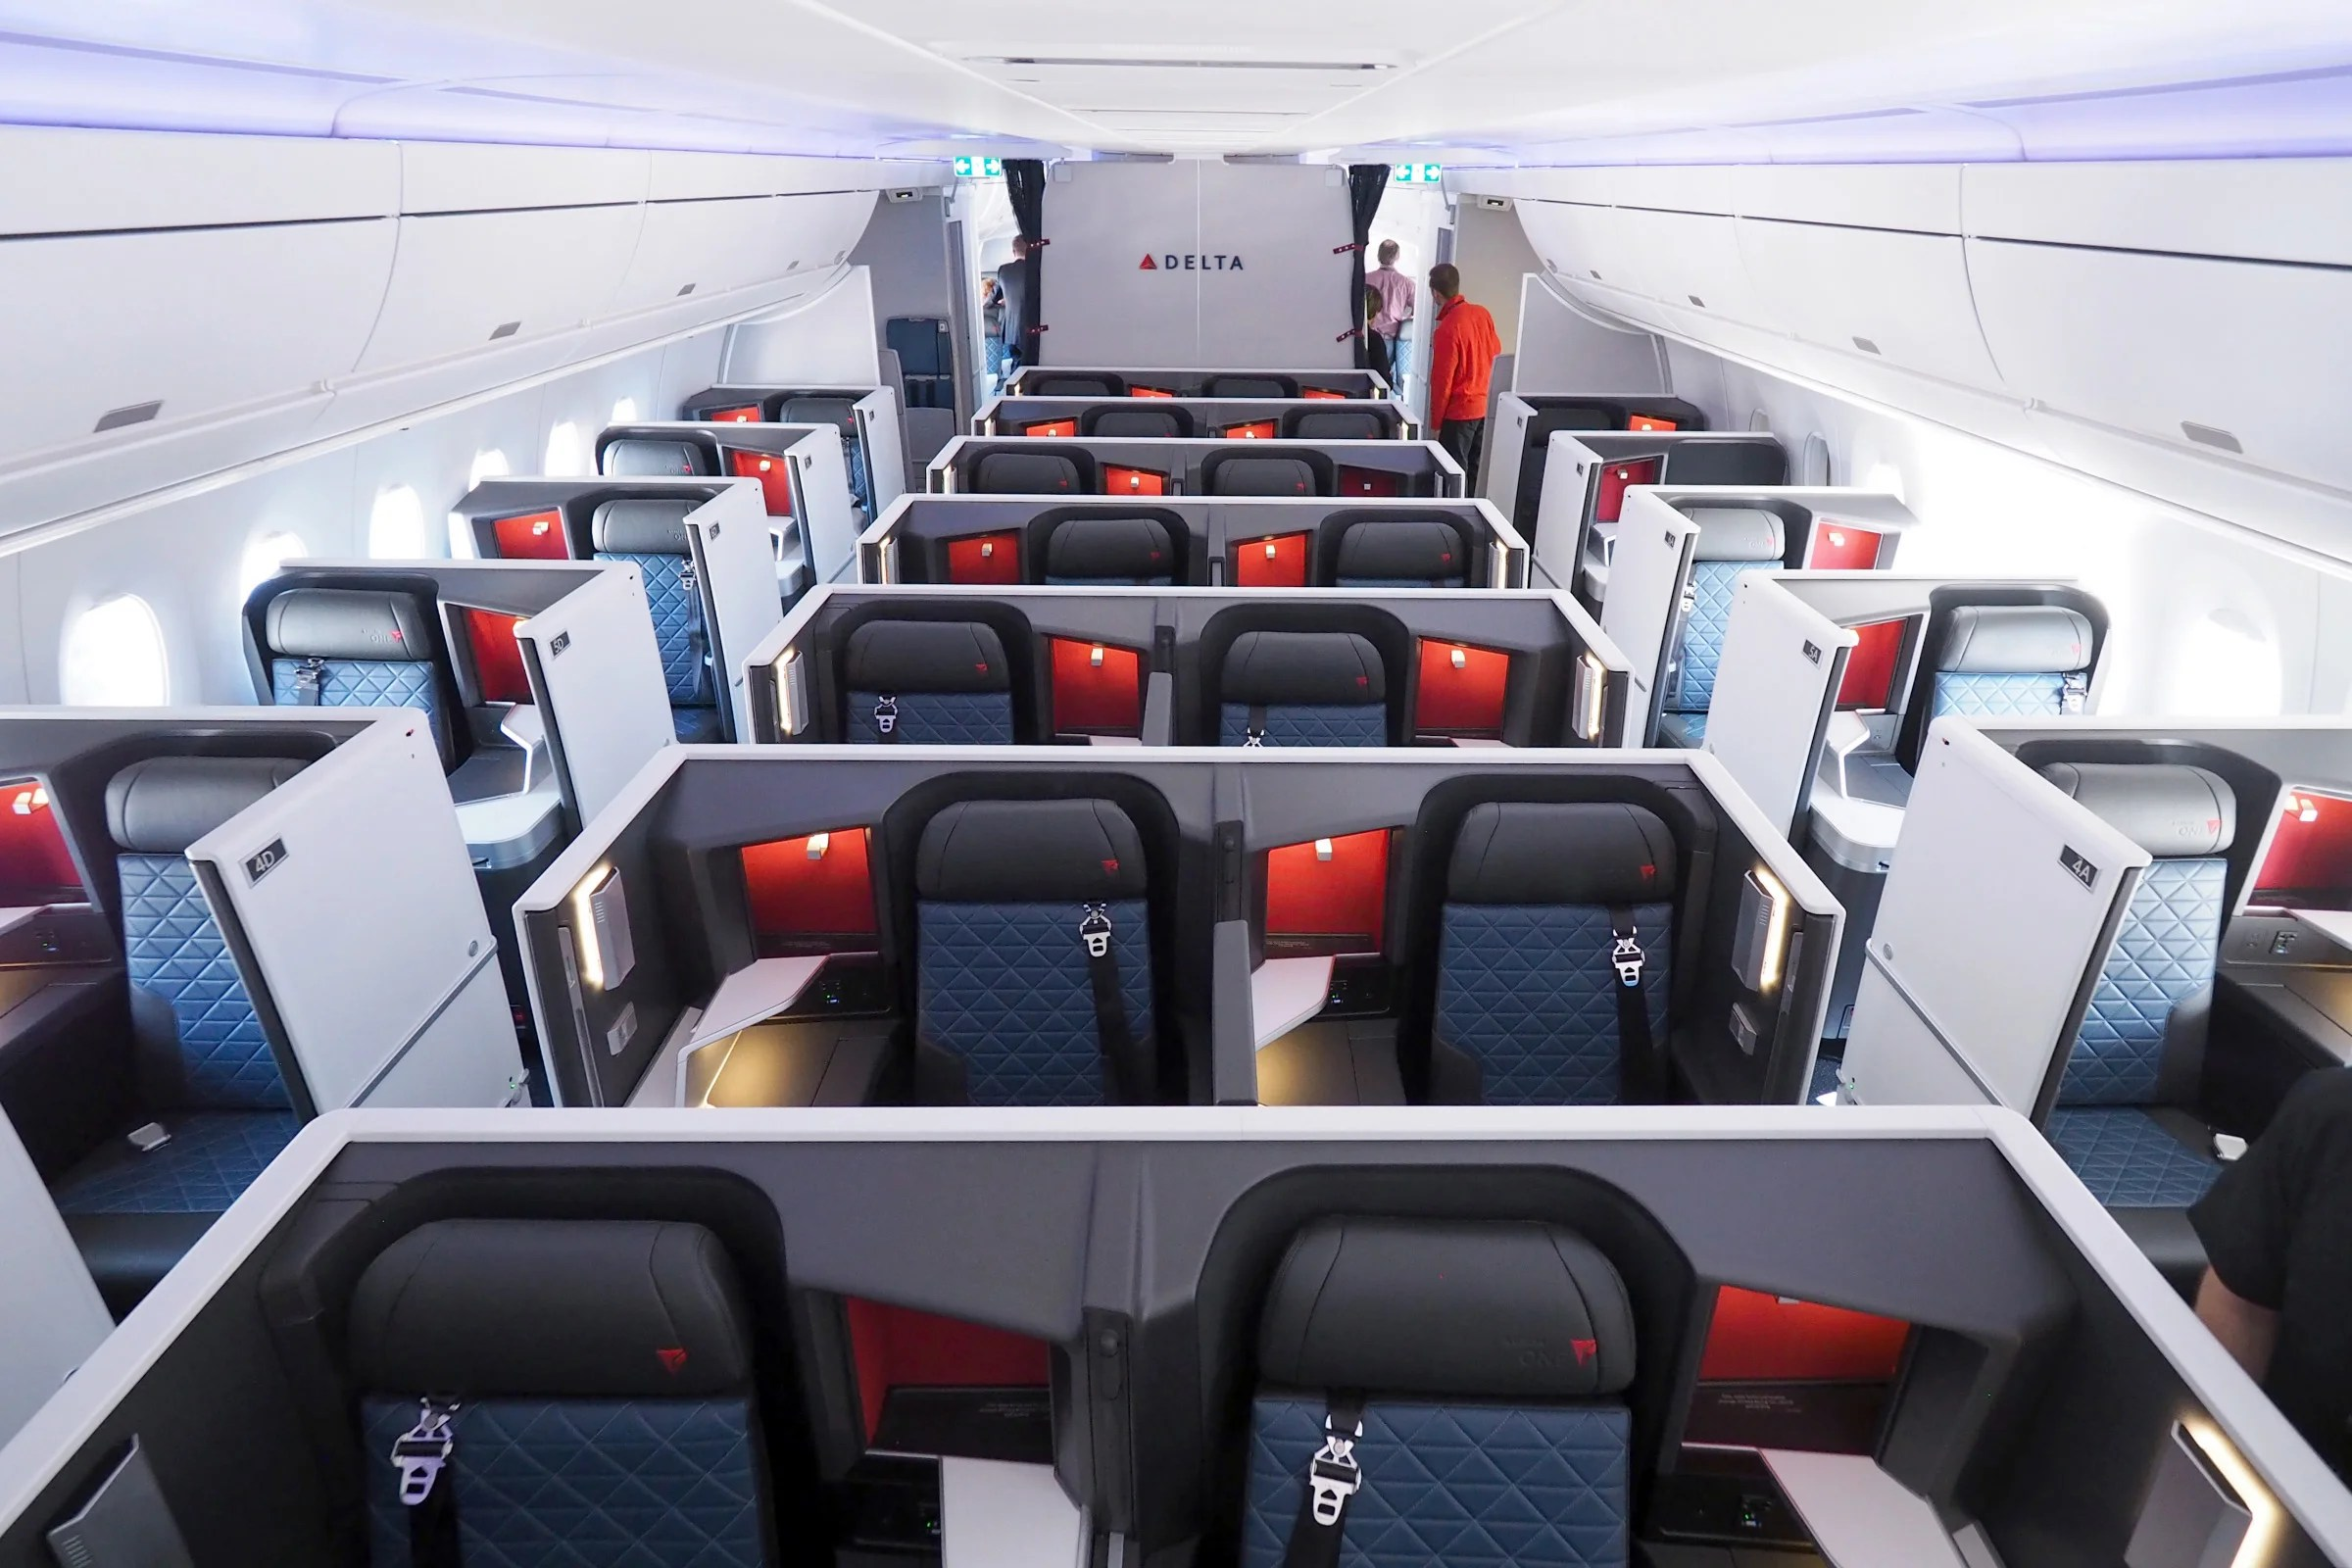 Forget SkyMiles: Here's how to book Delta One Suites to Europe for just 39,000 points